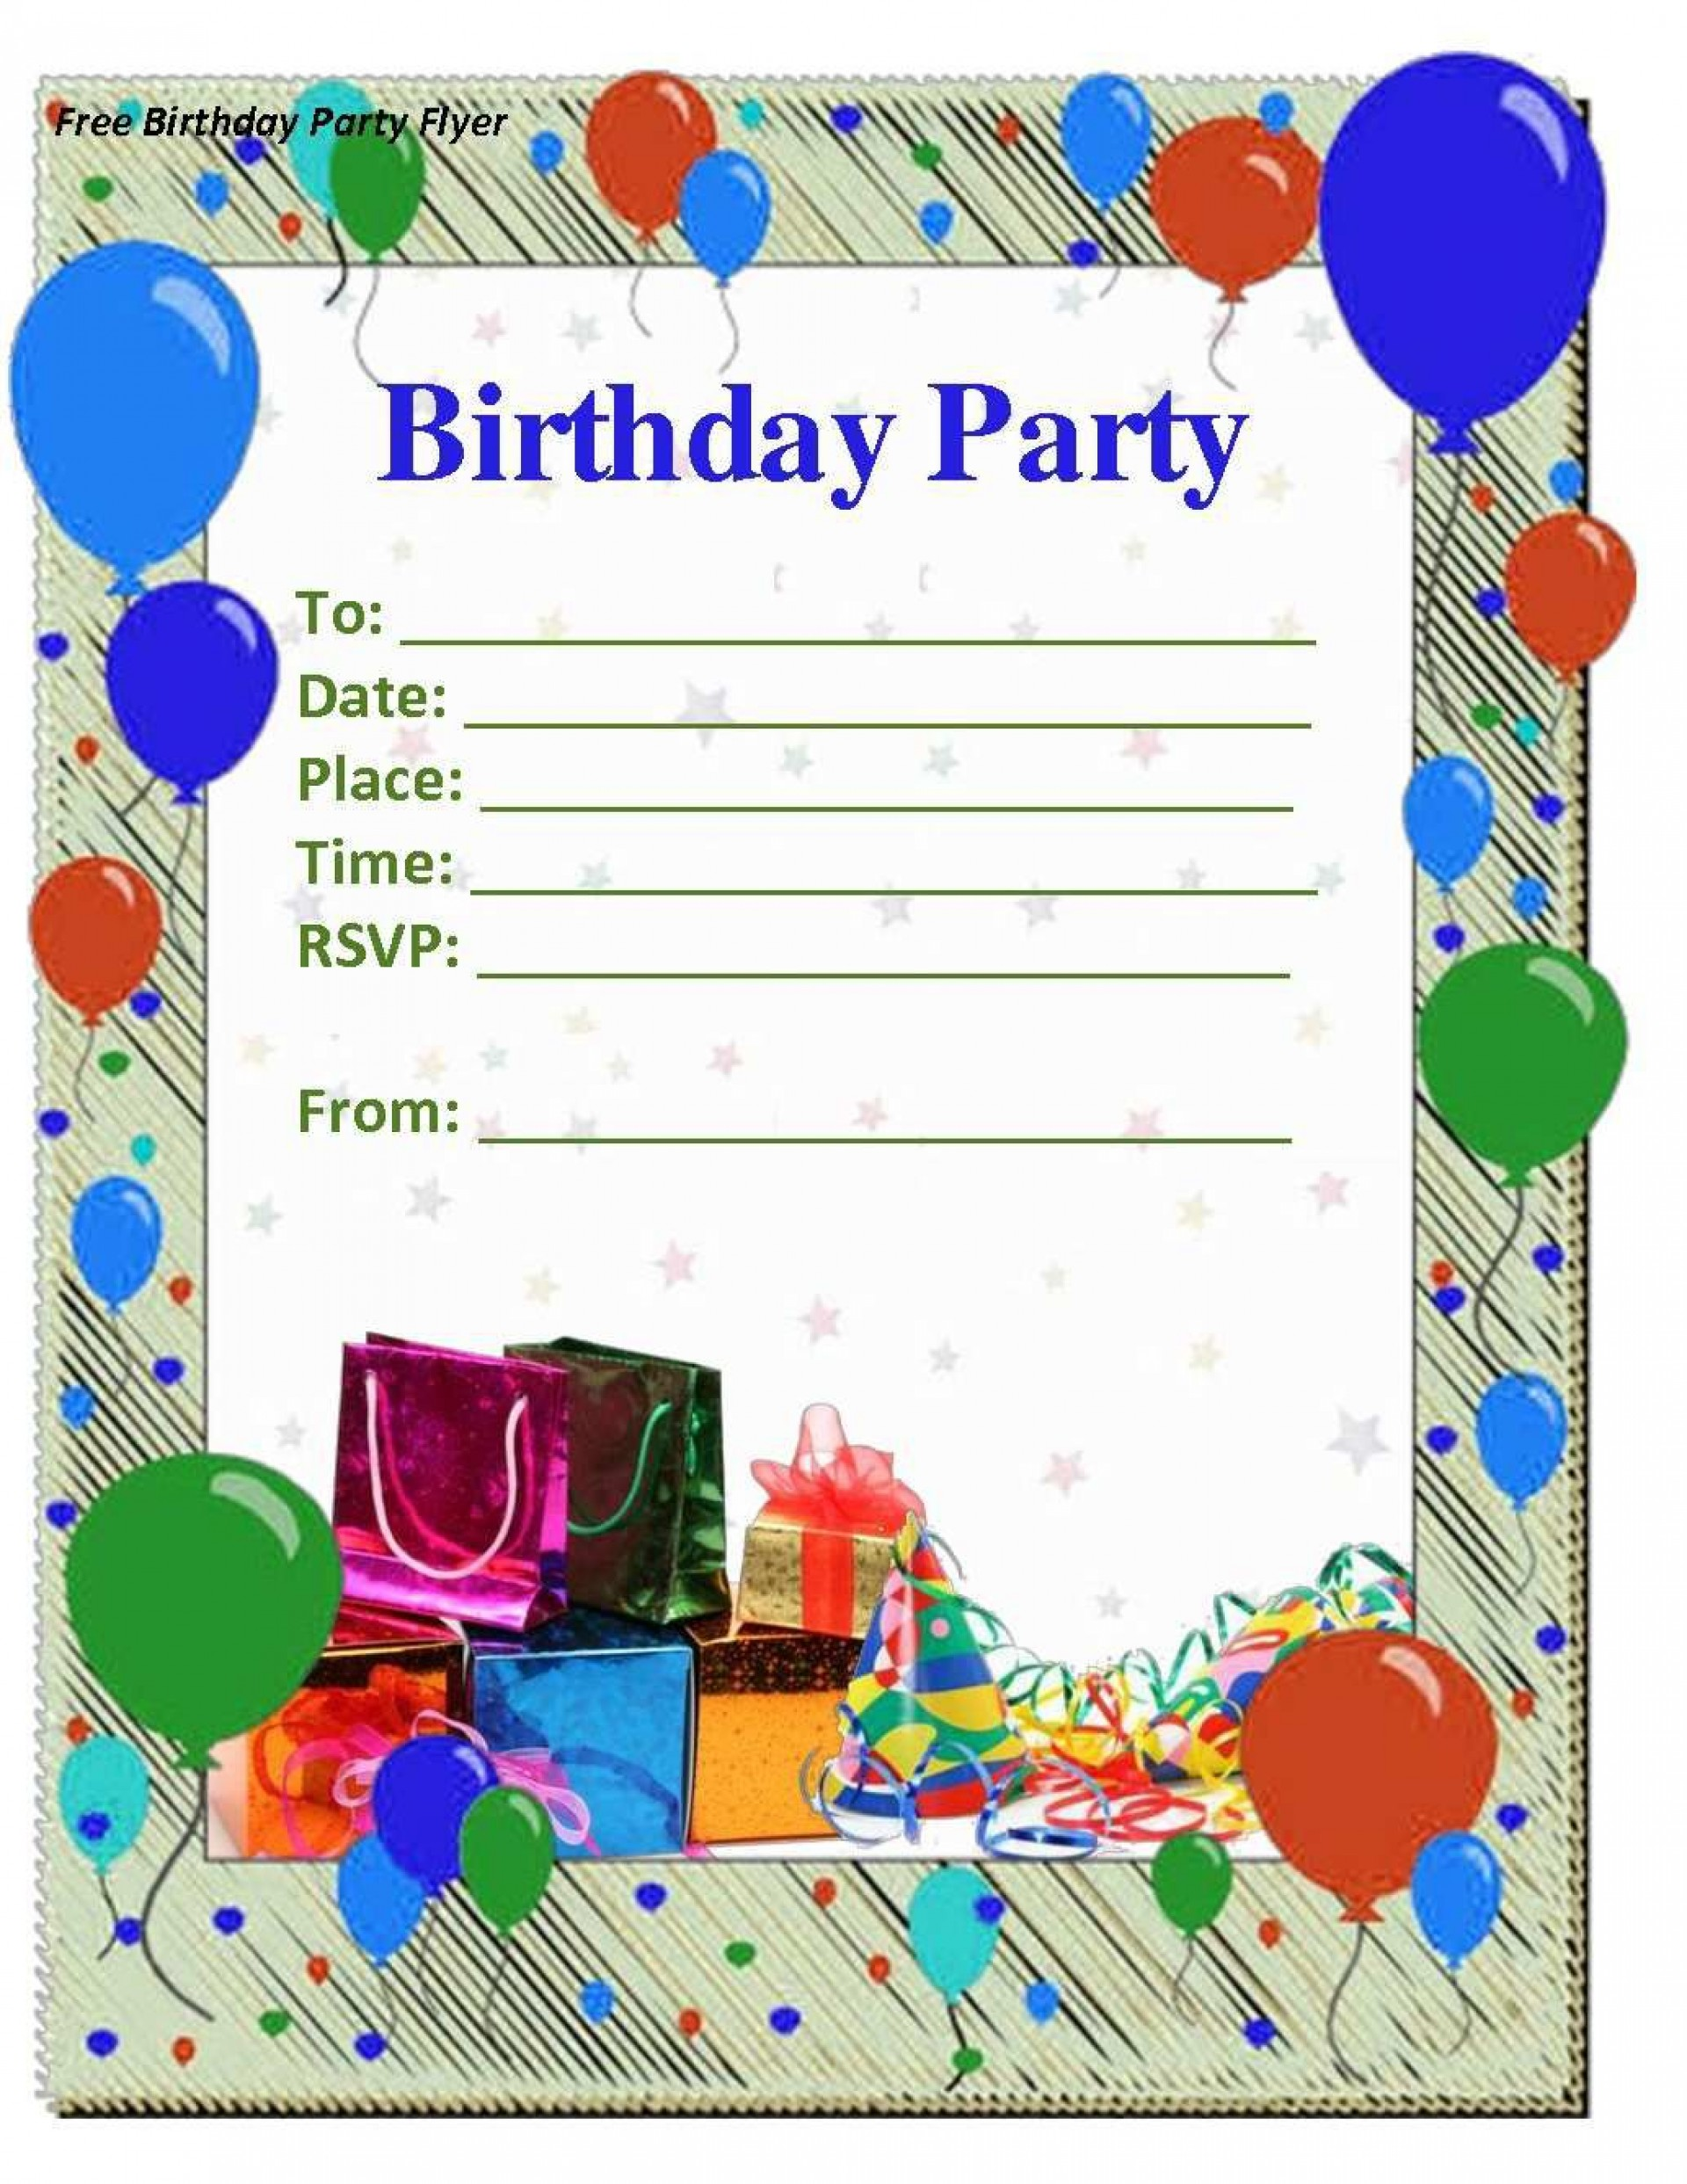 003 Rare Blank Birthday Invitation Template For Microsoft Word Highest Clarity 1920